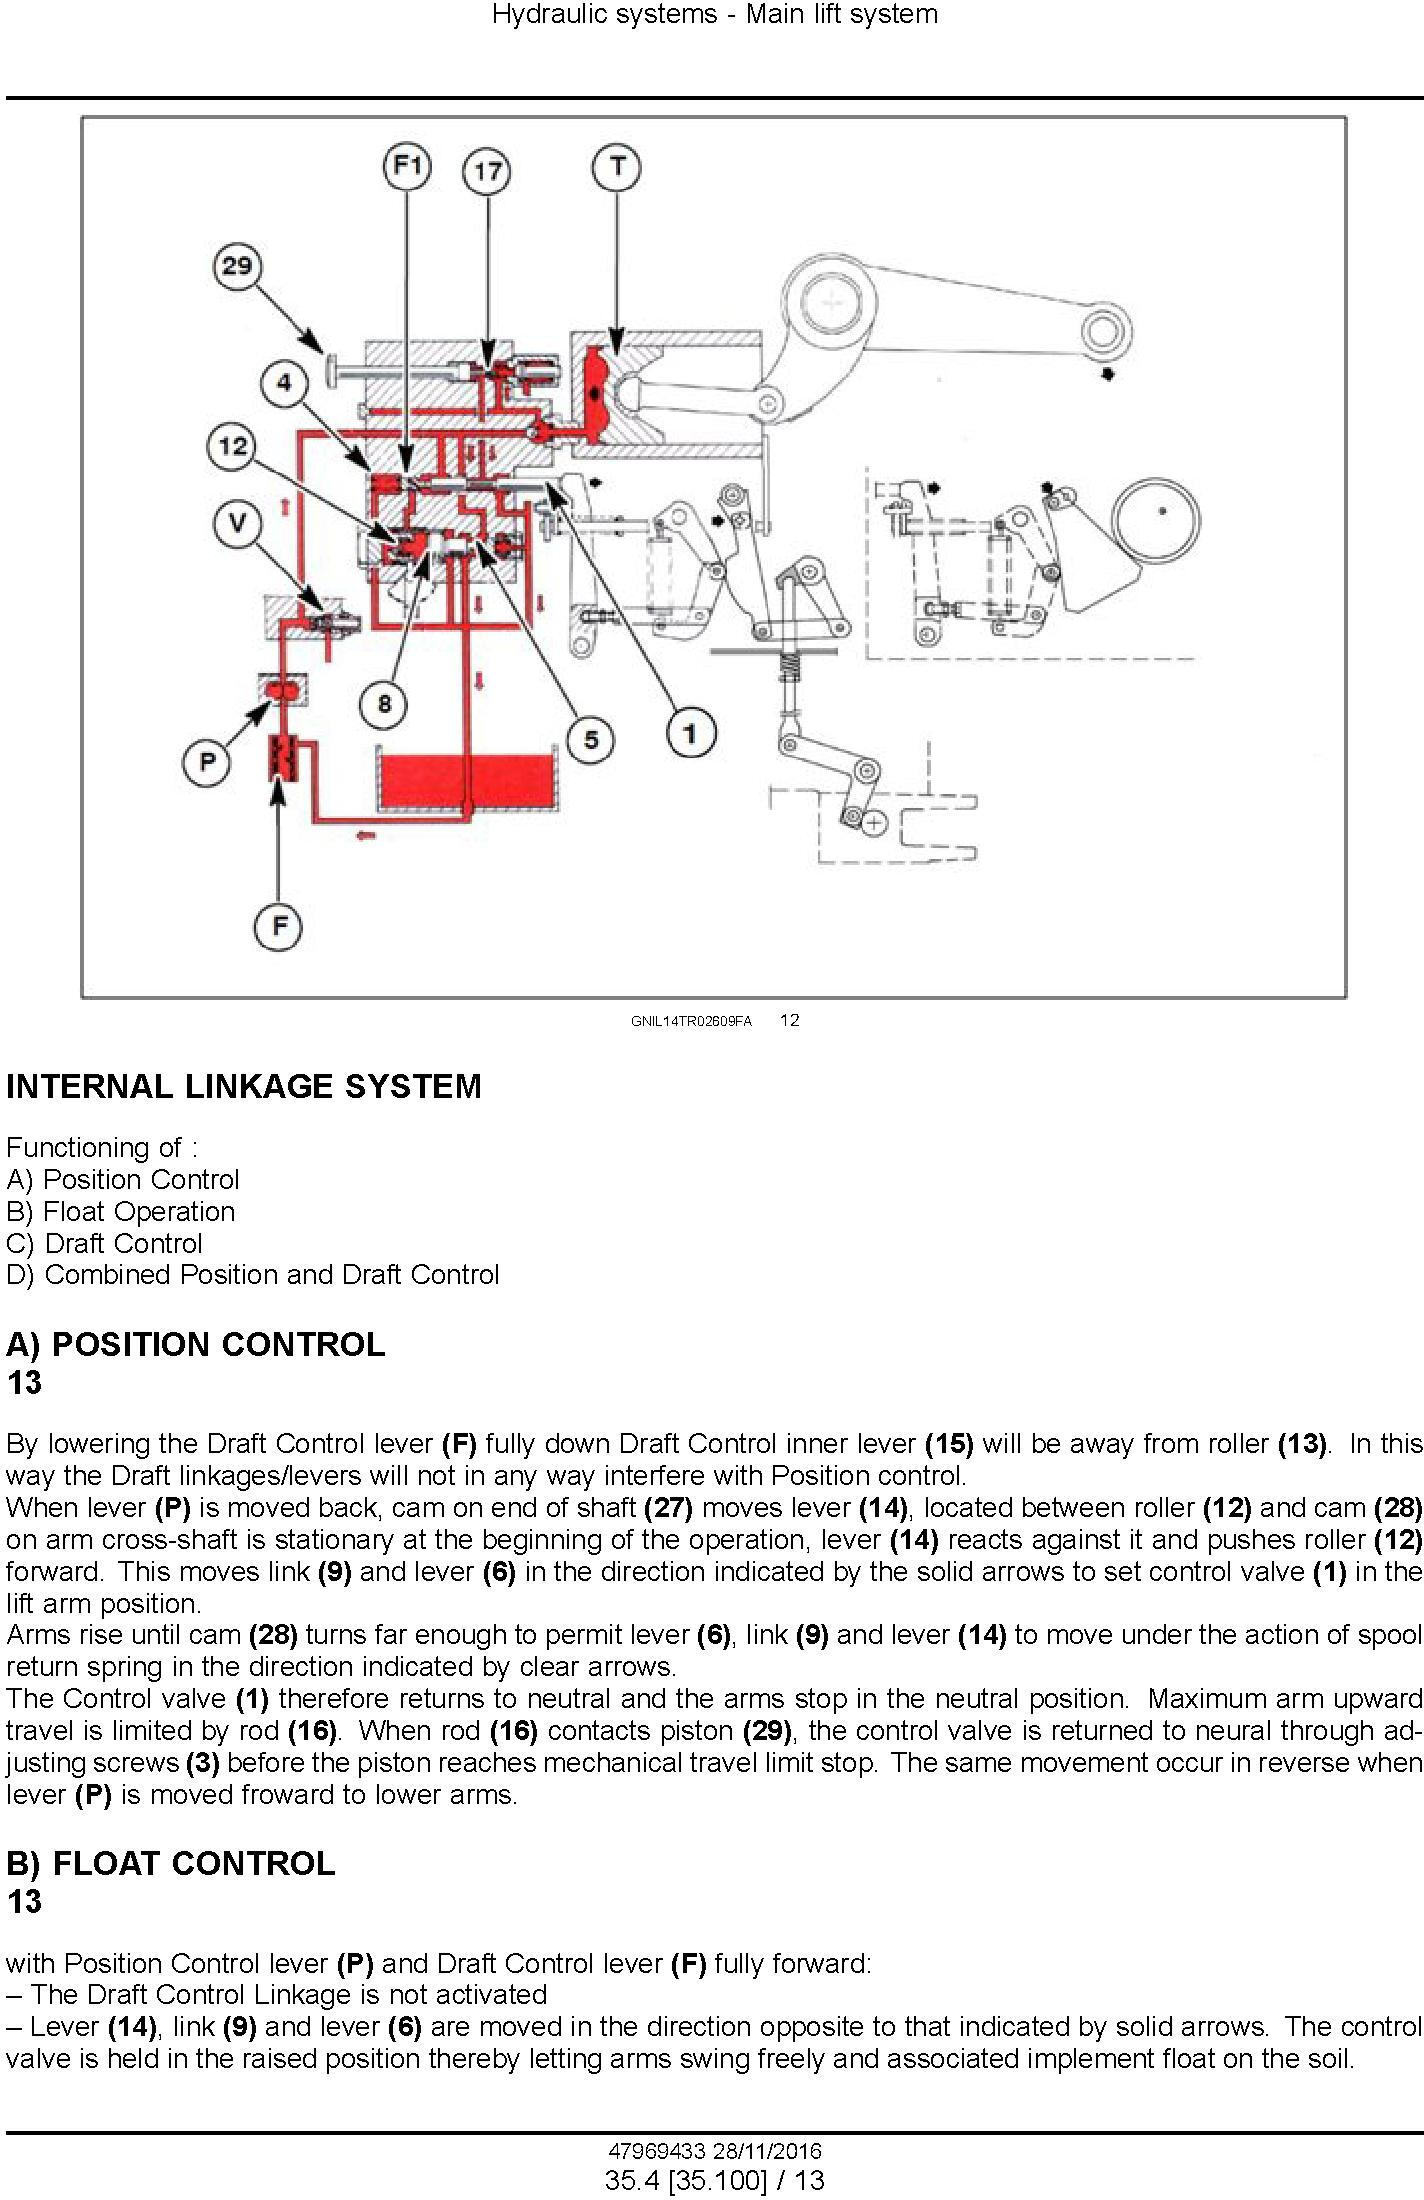 New Holland 6010, 6510, 7510 Tractor Service Manual - 2